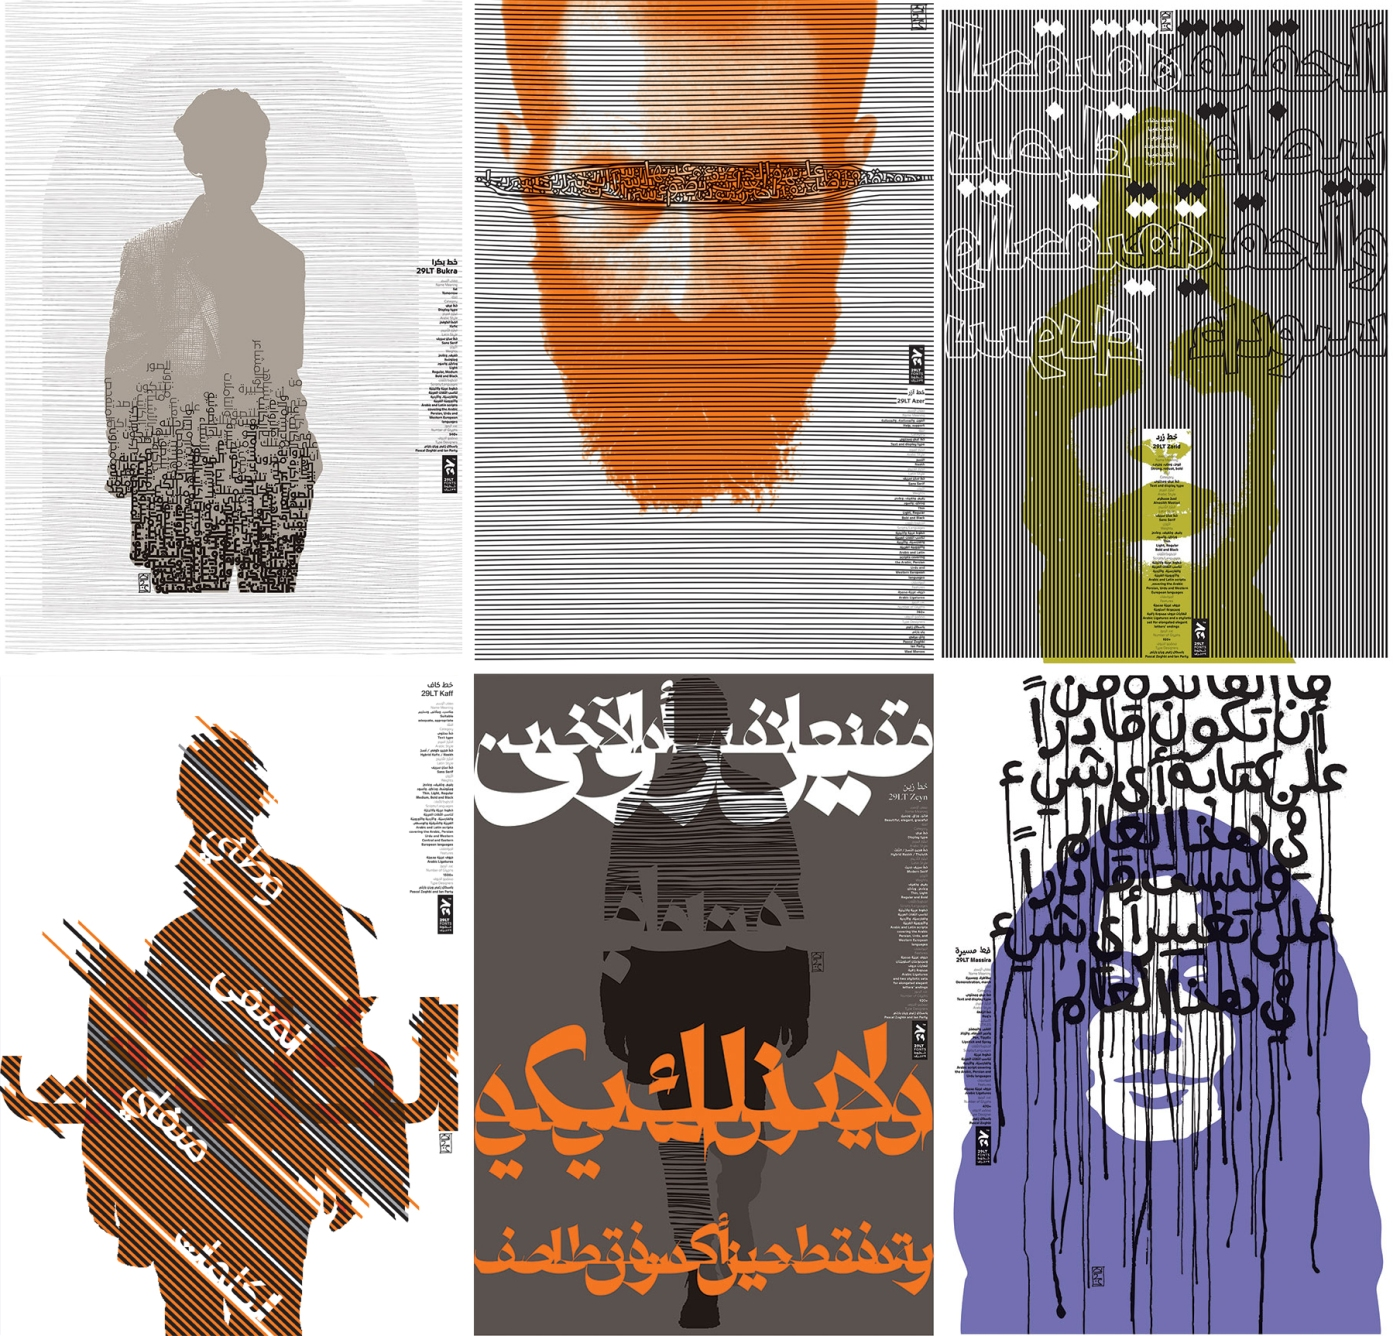 29LT Posters designed by Reza Abedini. Each poster is designed with one of 29LT fonts.